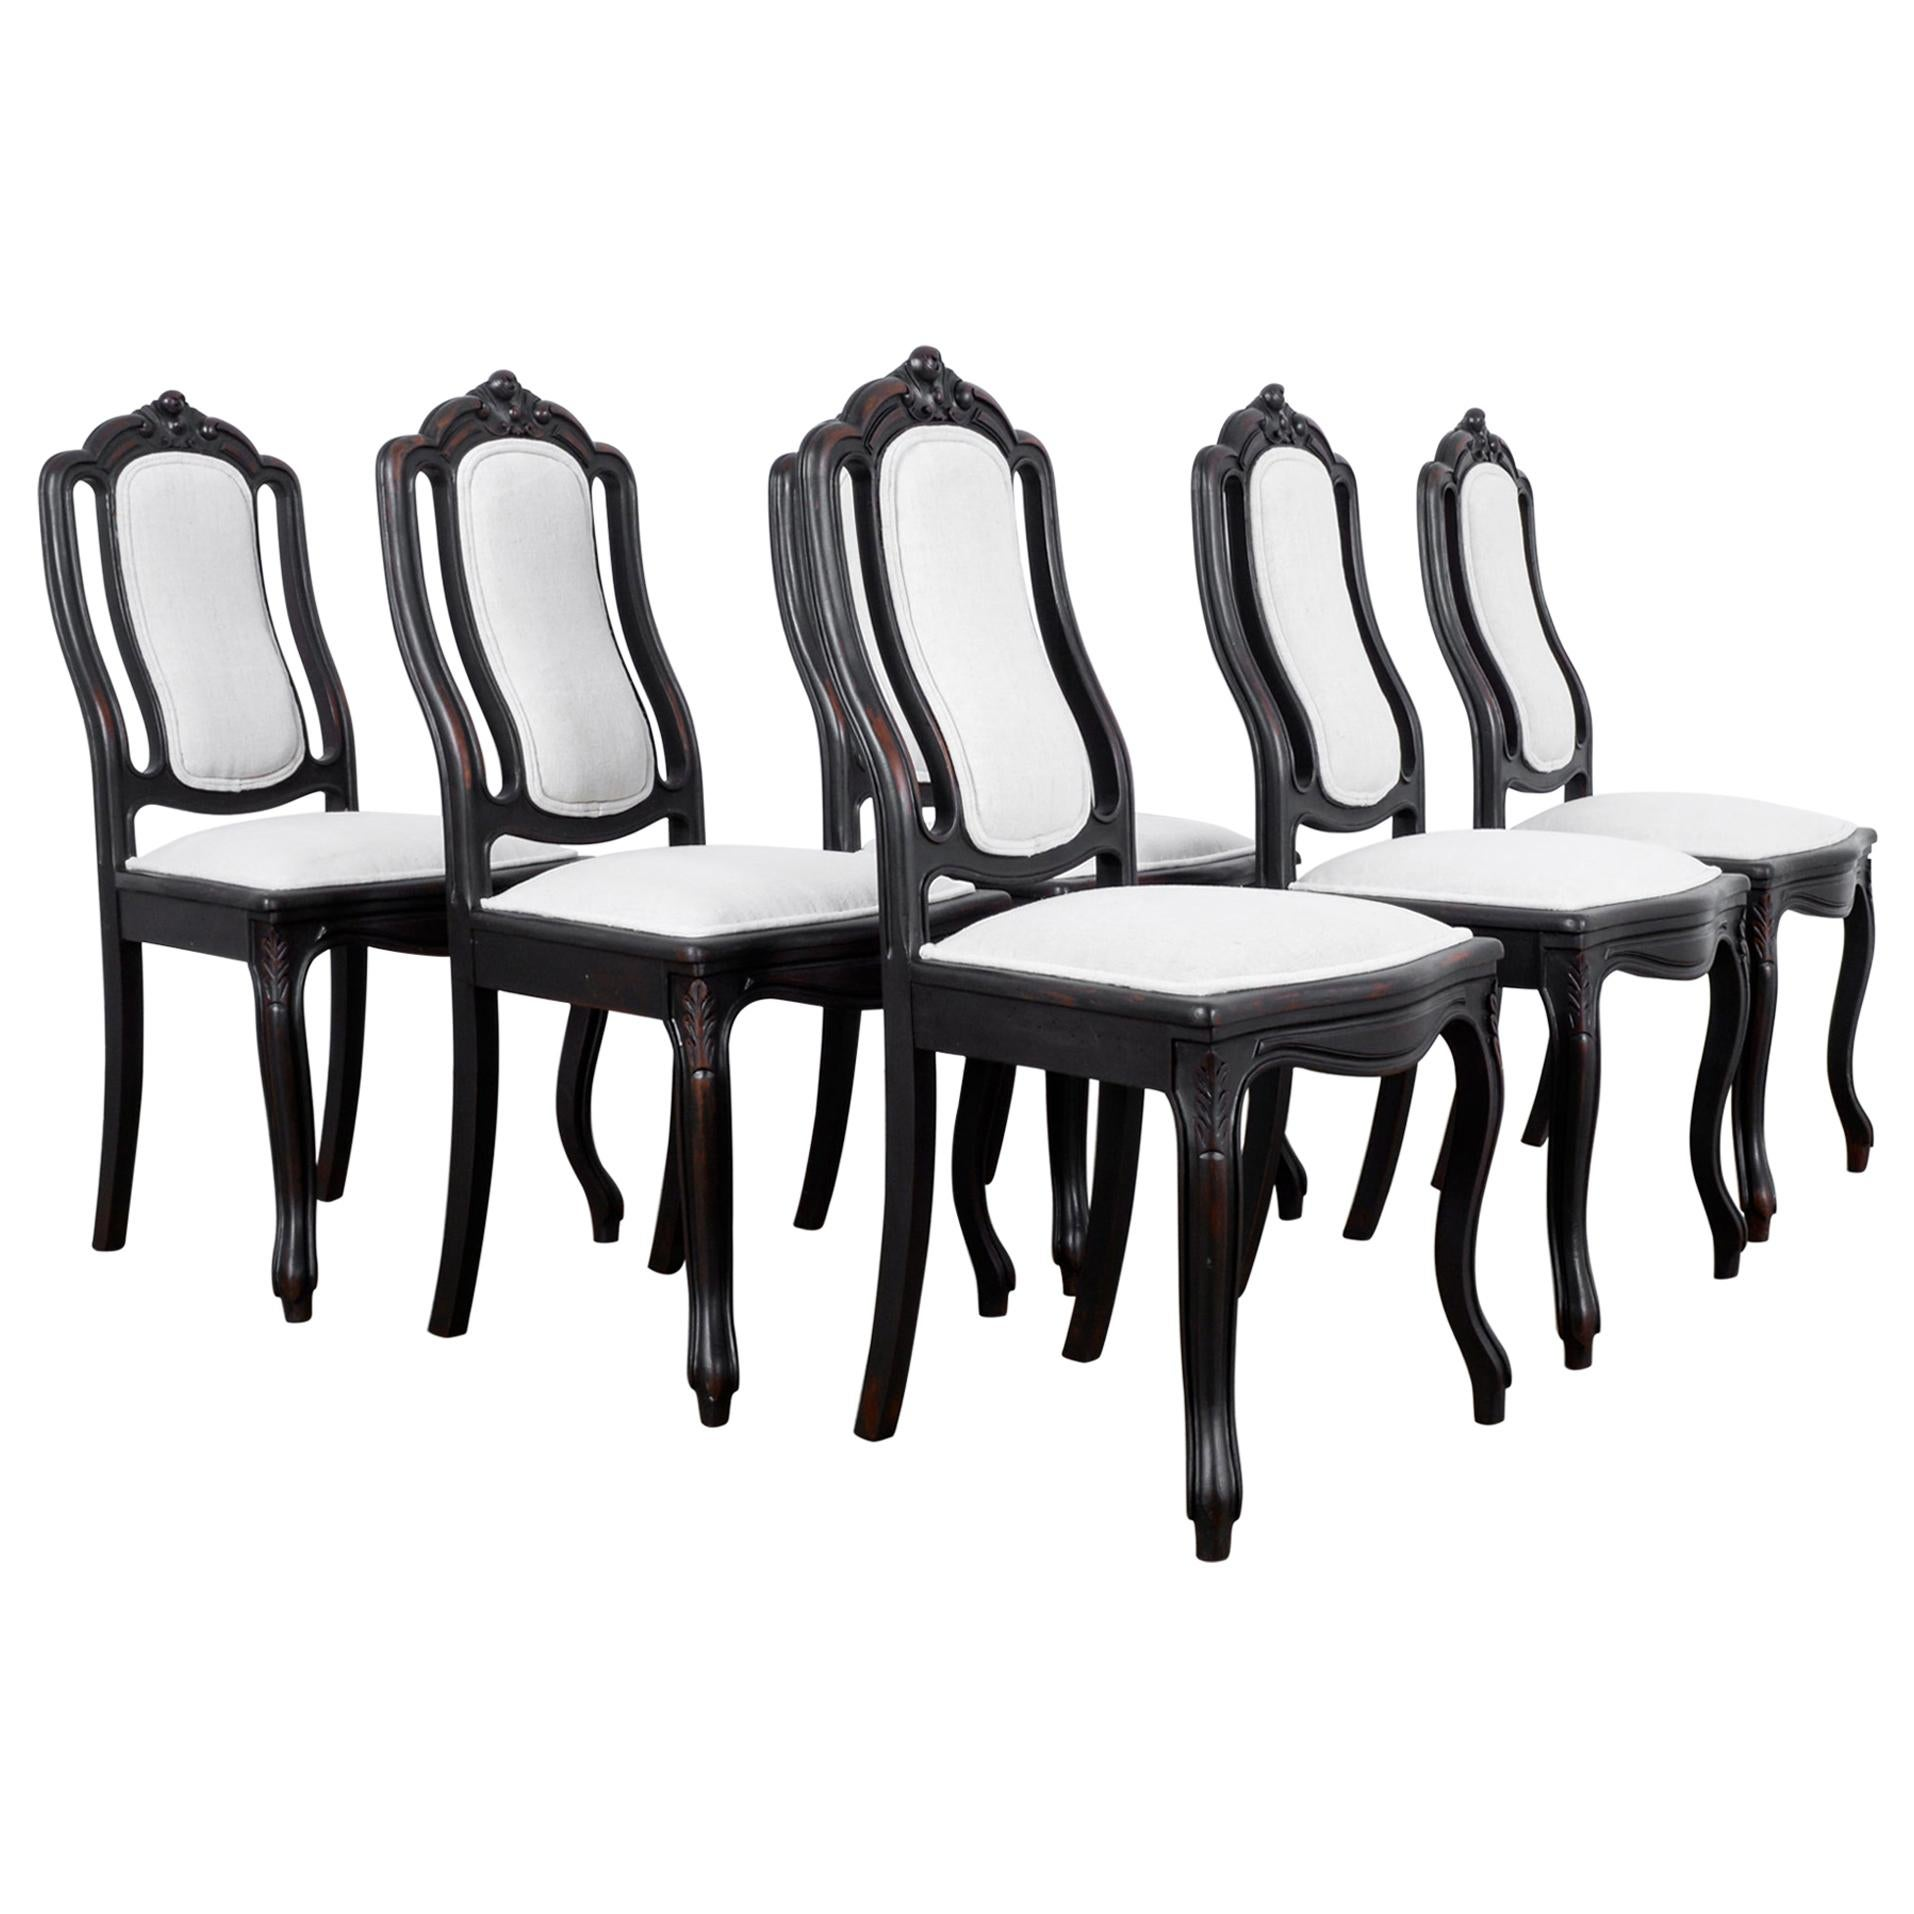 1900s French Upholstered Dining Chairs, Set of Six